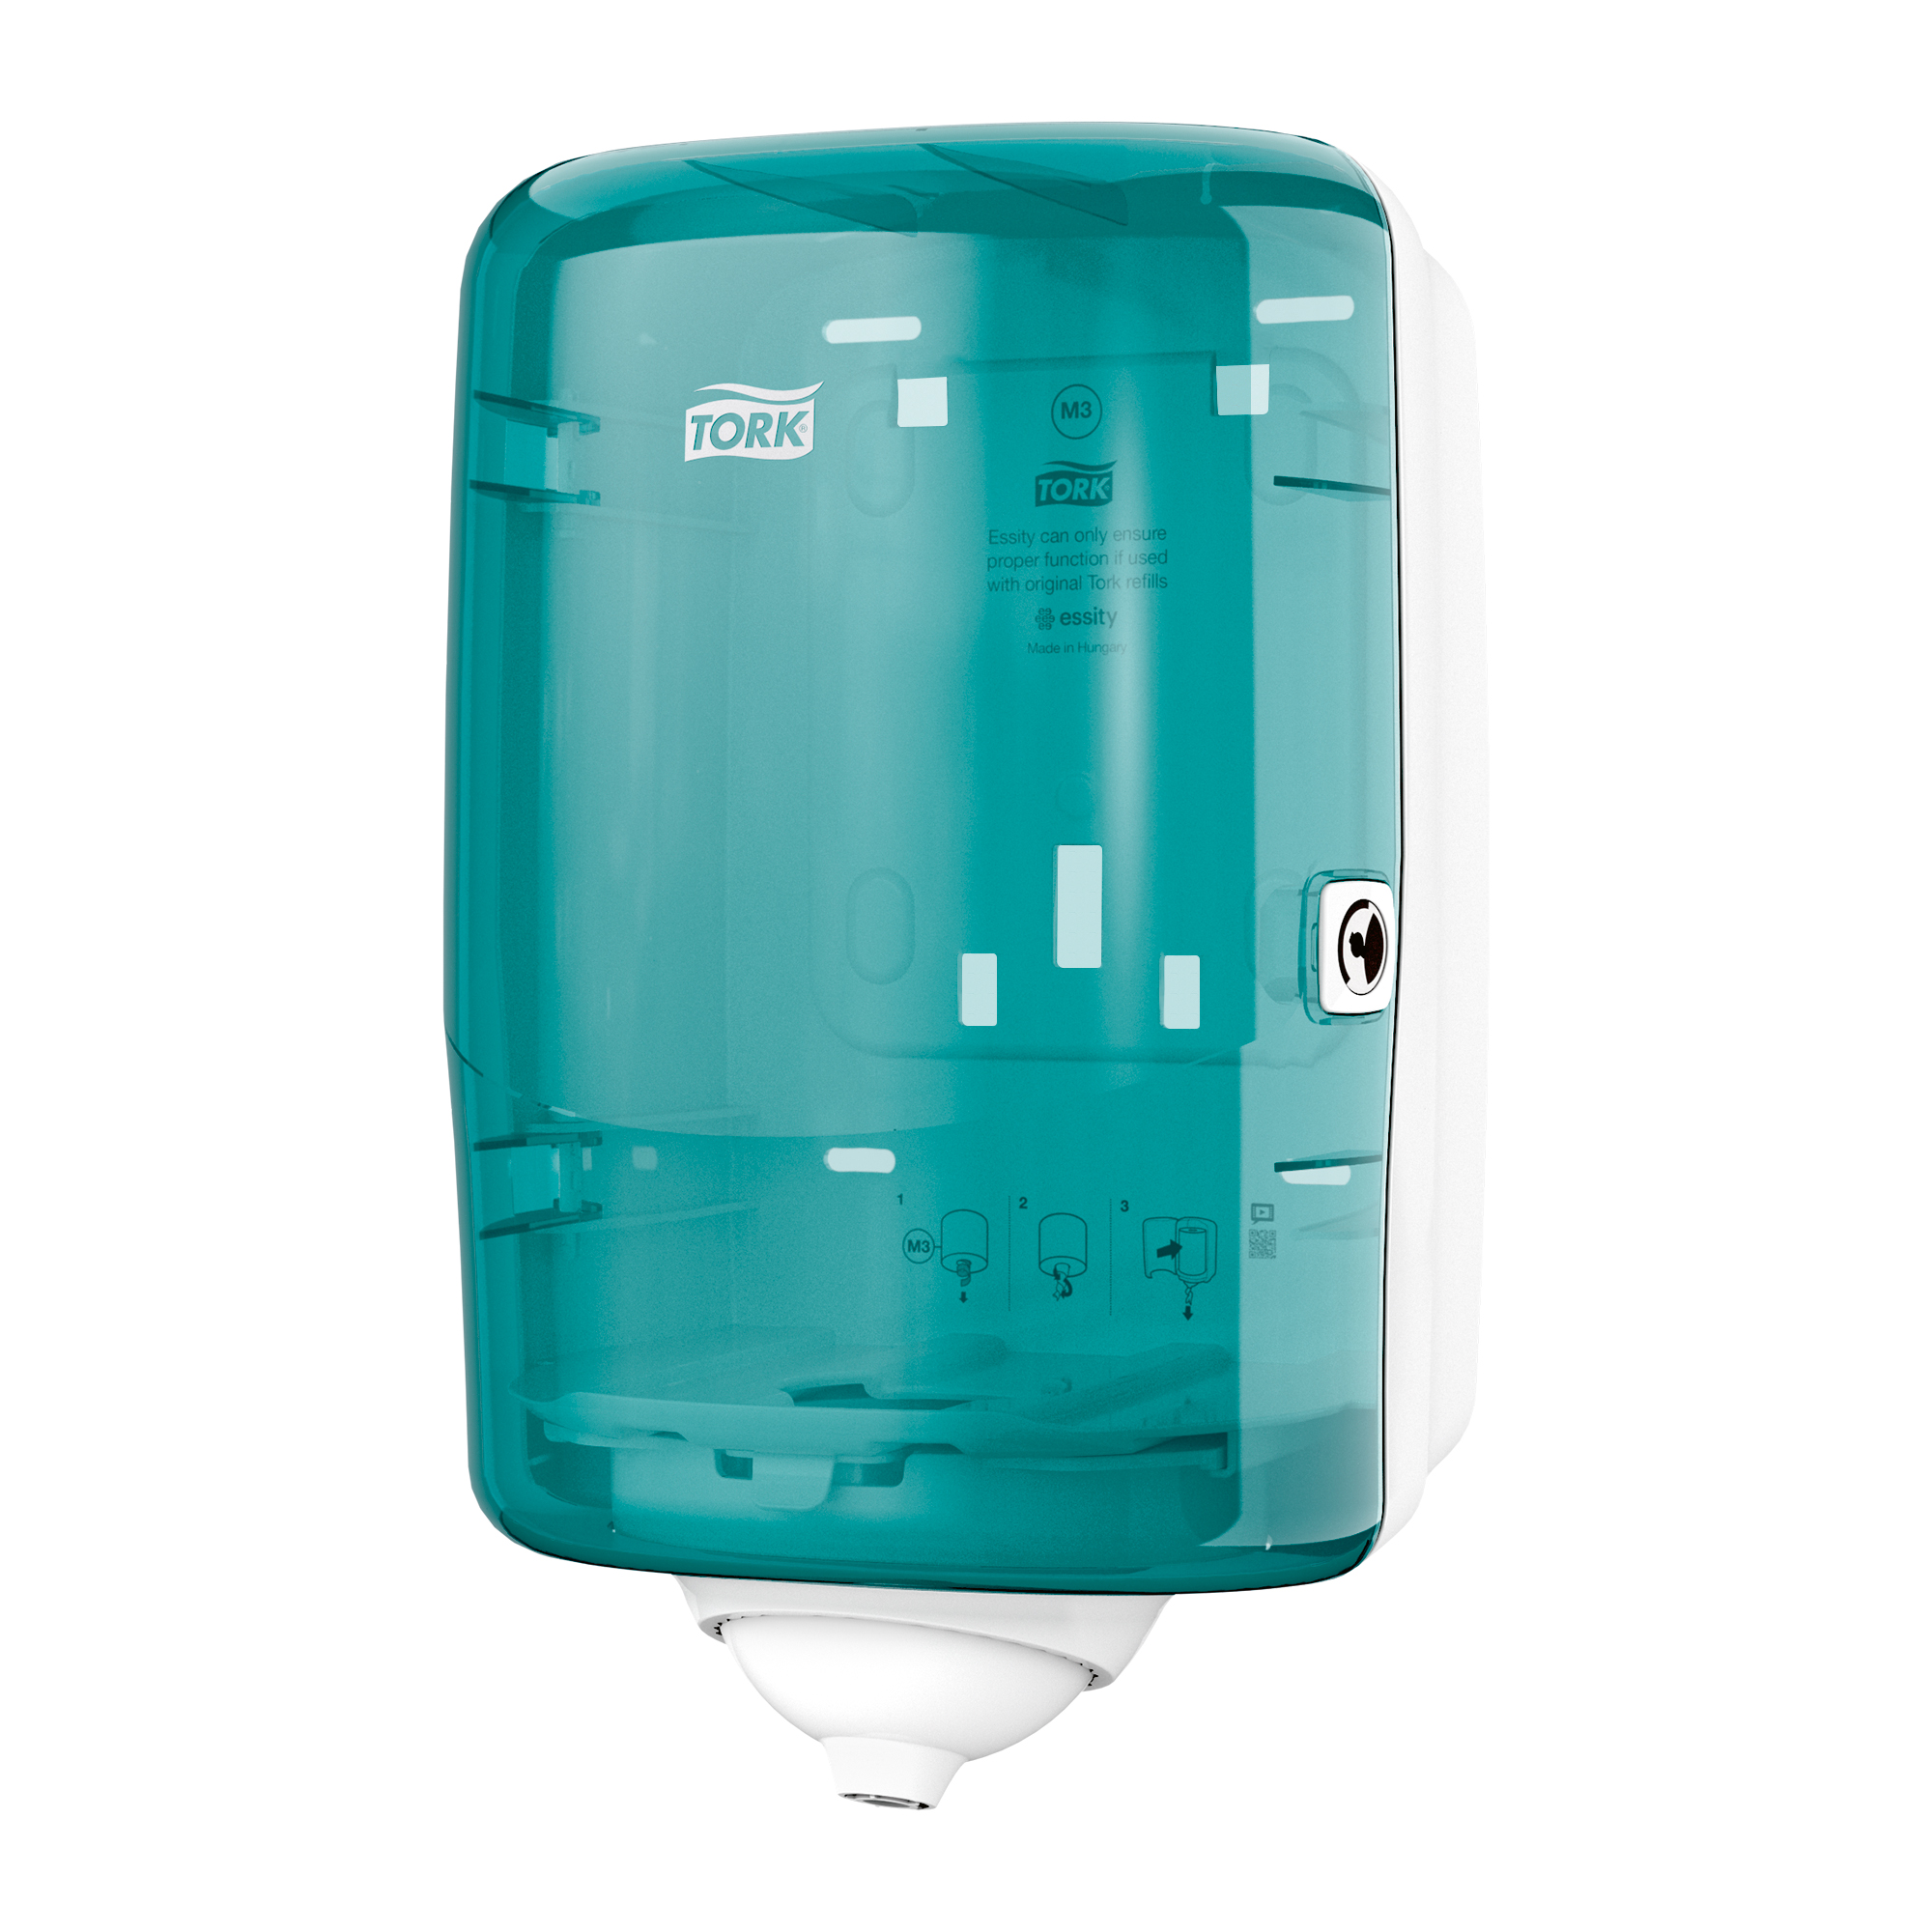 Hand Towels & Dispensers Tork Reflex Single Sheet Mini Centrefeed Dispenser W191xD180xH321mm Plastic Blue Ref 473167